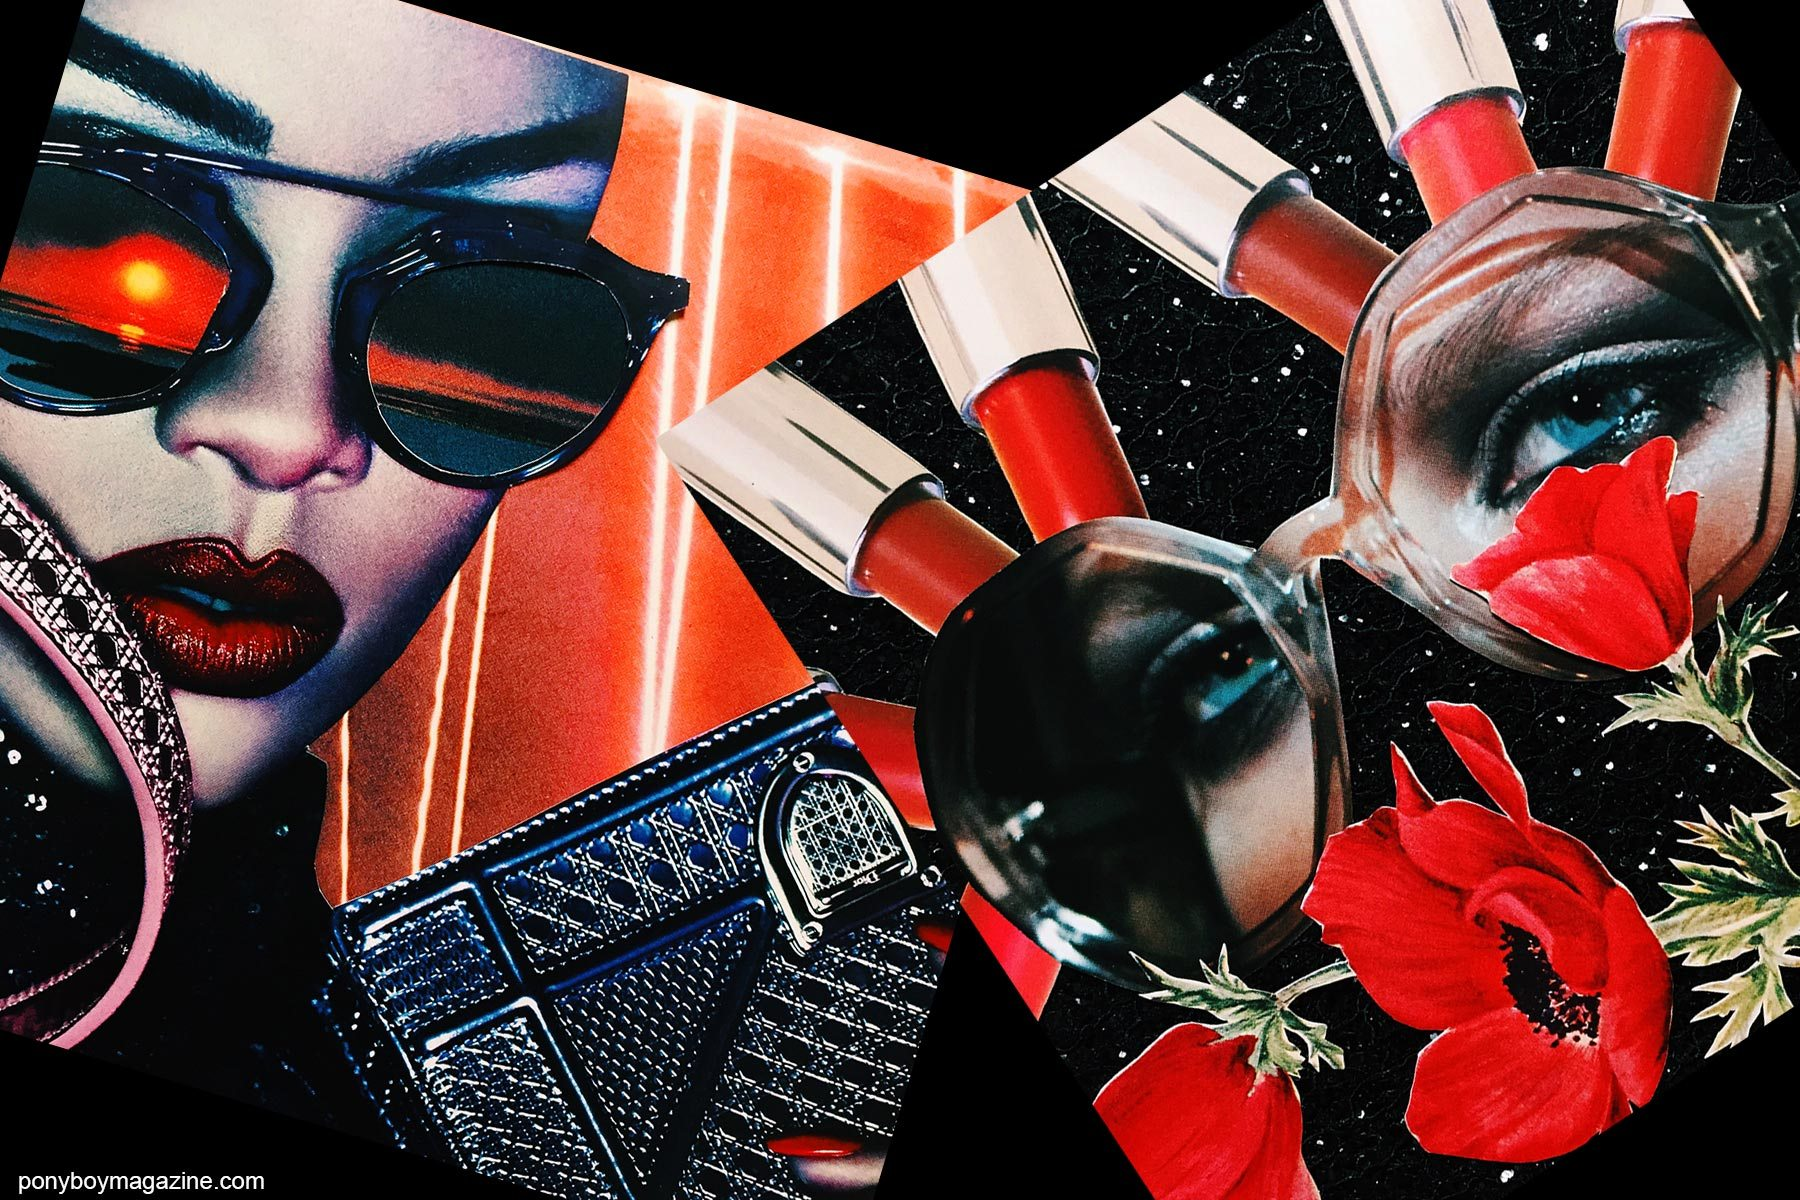 Collage artwork of Badgal and Marc Jacob images by Patrick Keohane for RS Theory. Ponyboy magazine NY.